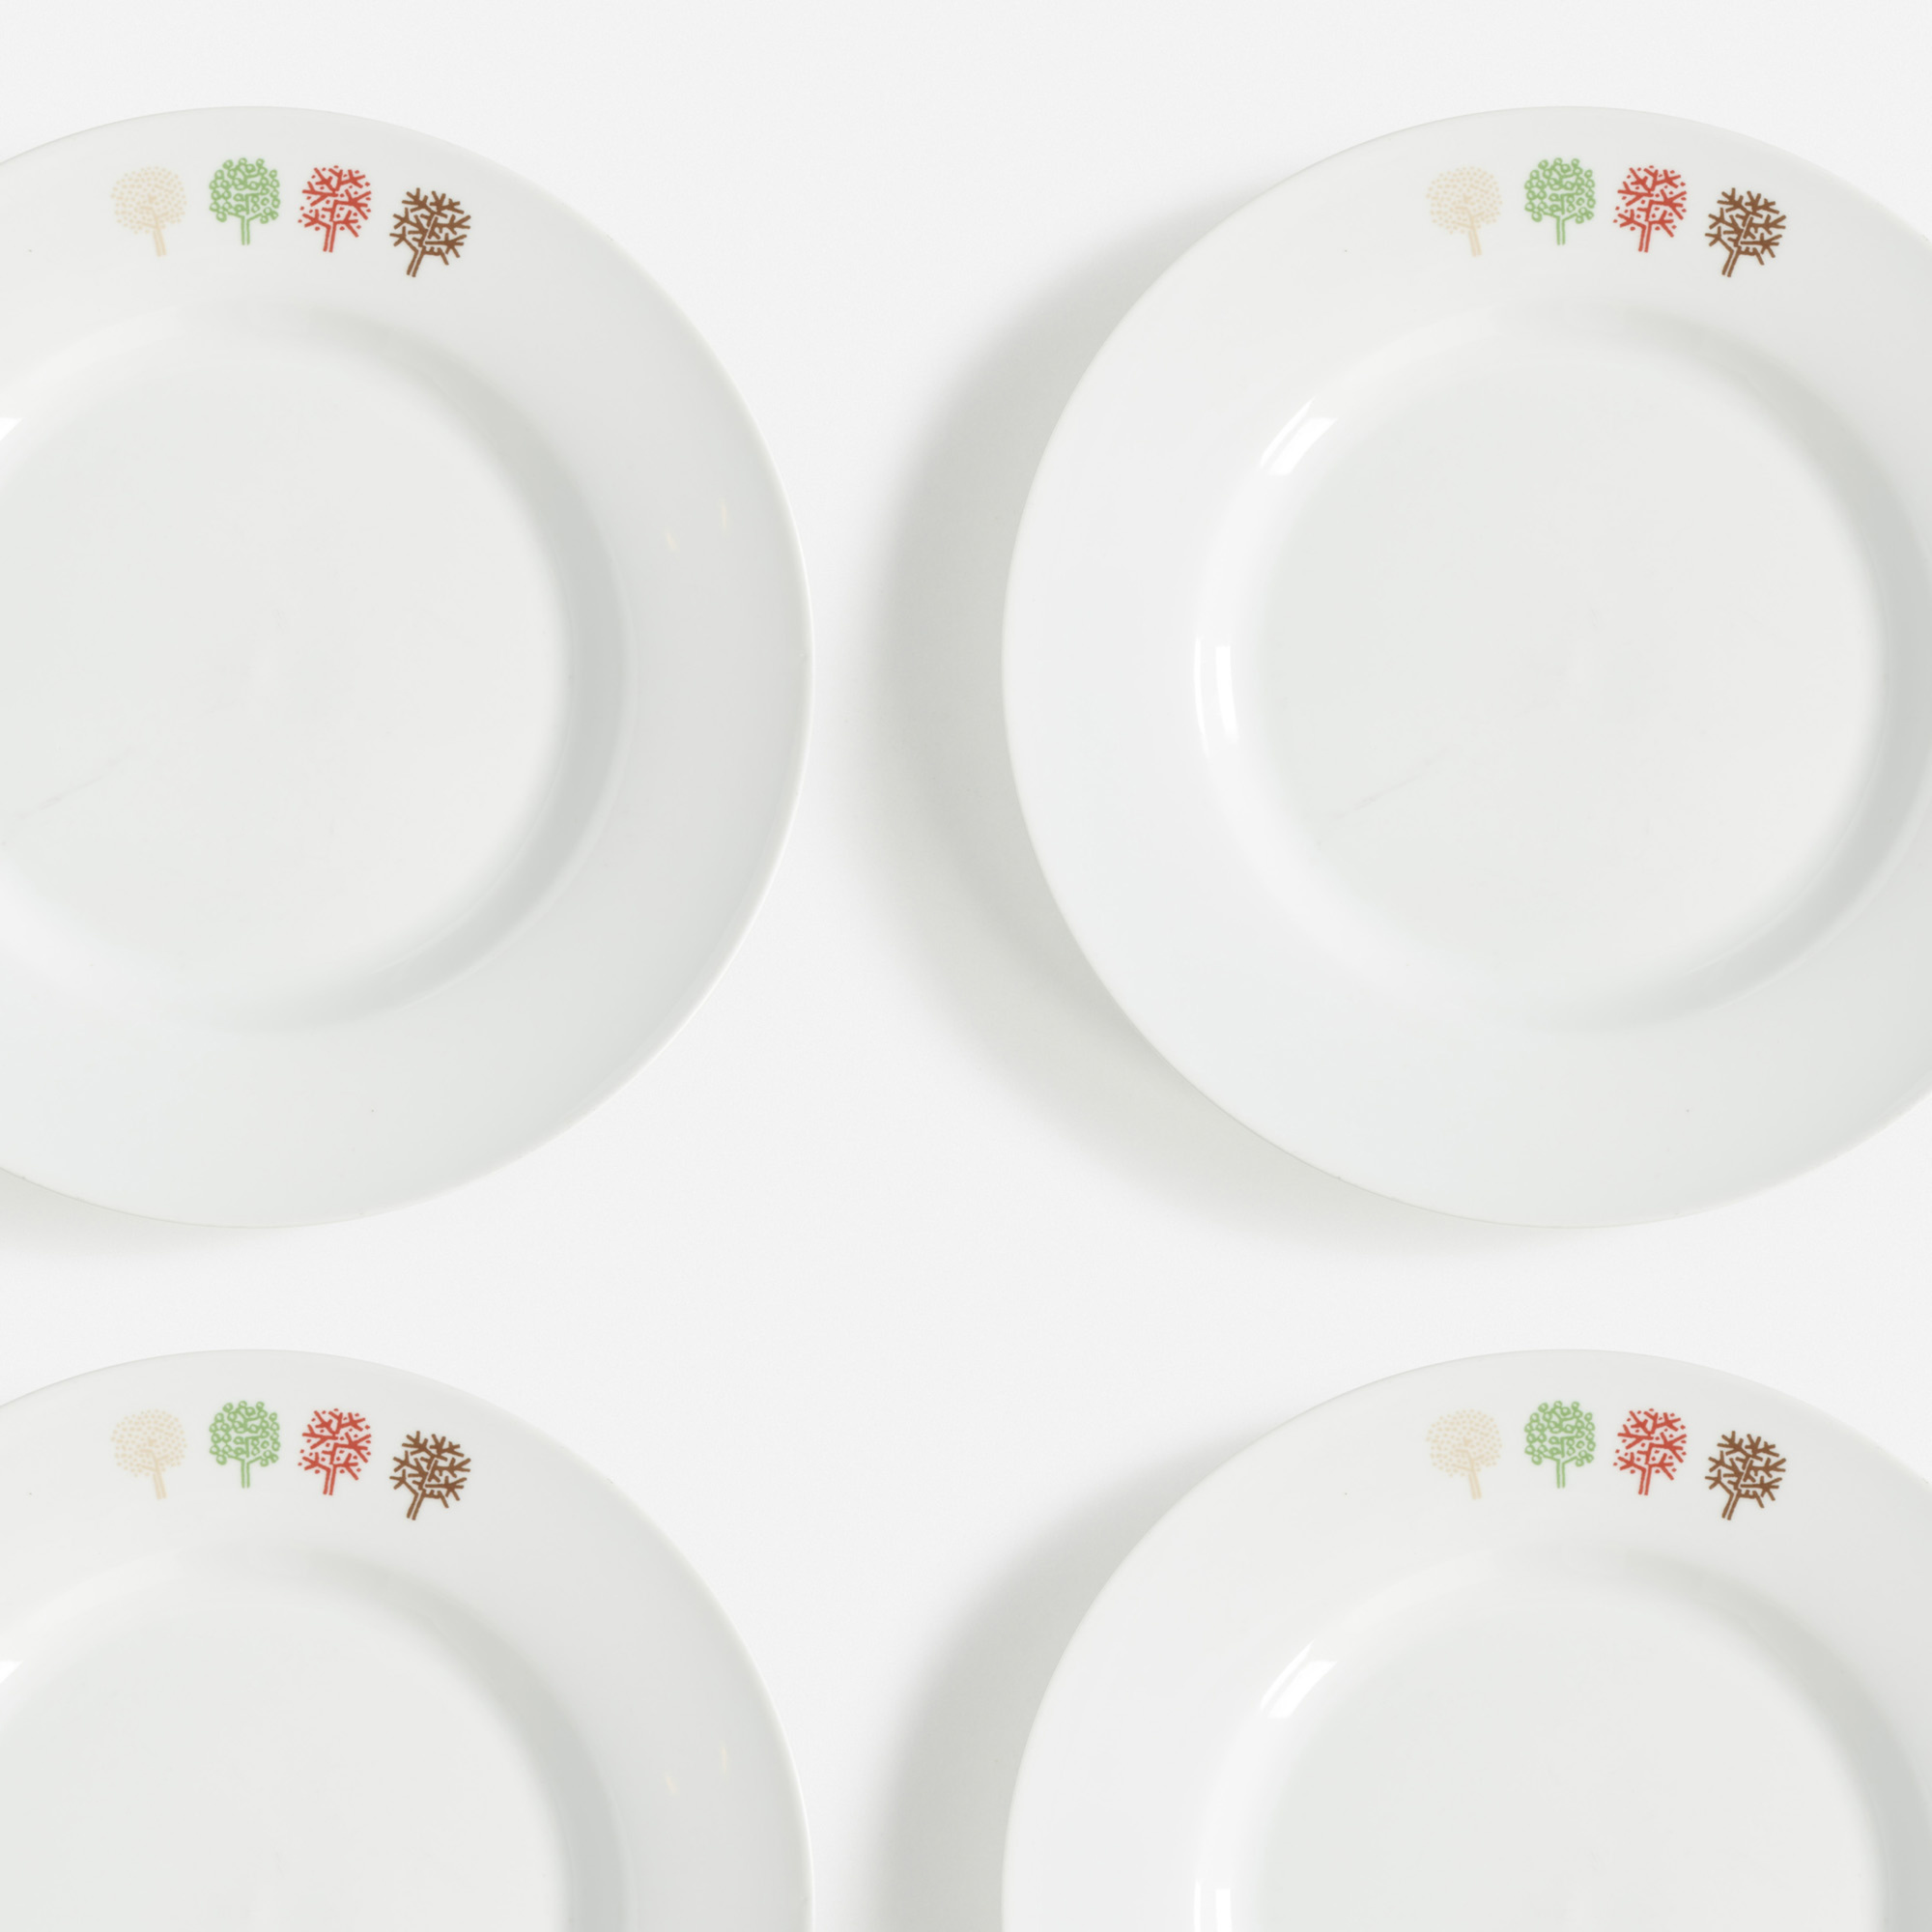 441:  / Four Seasons plates, set of twelve (1 of 1)